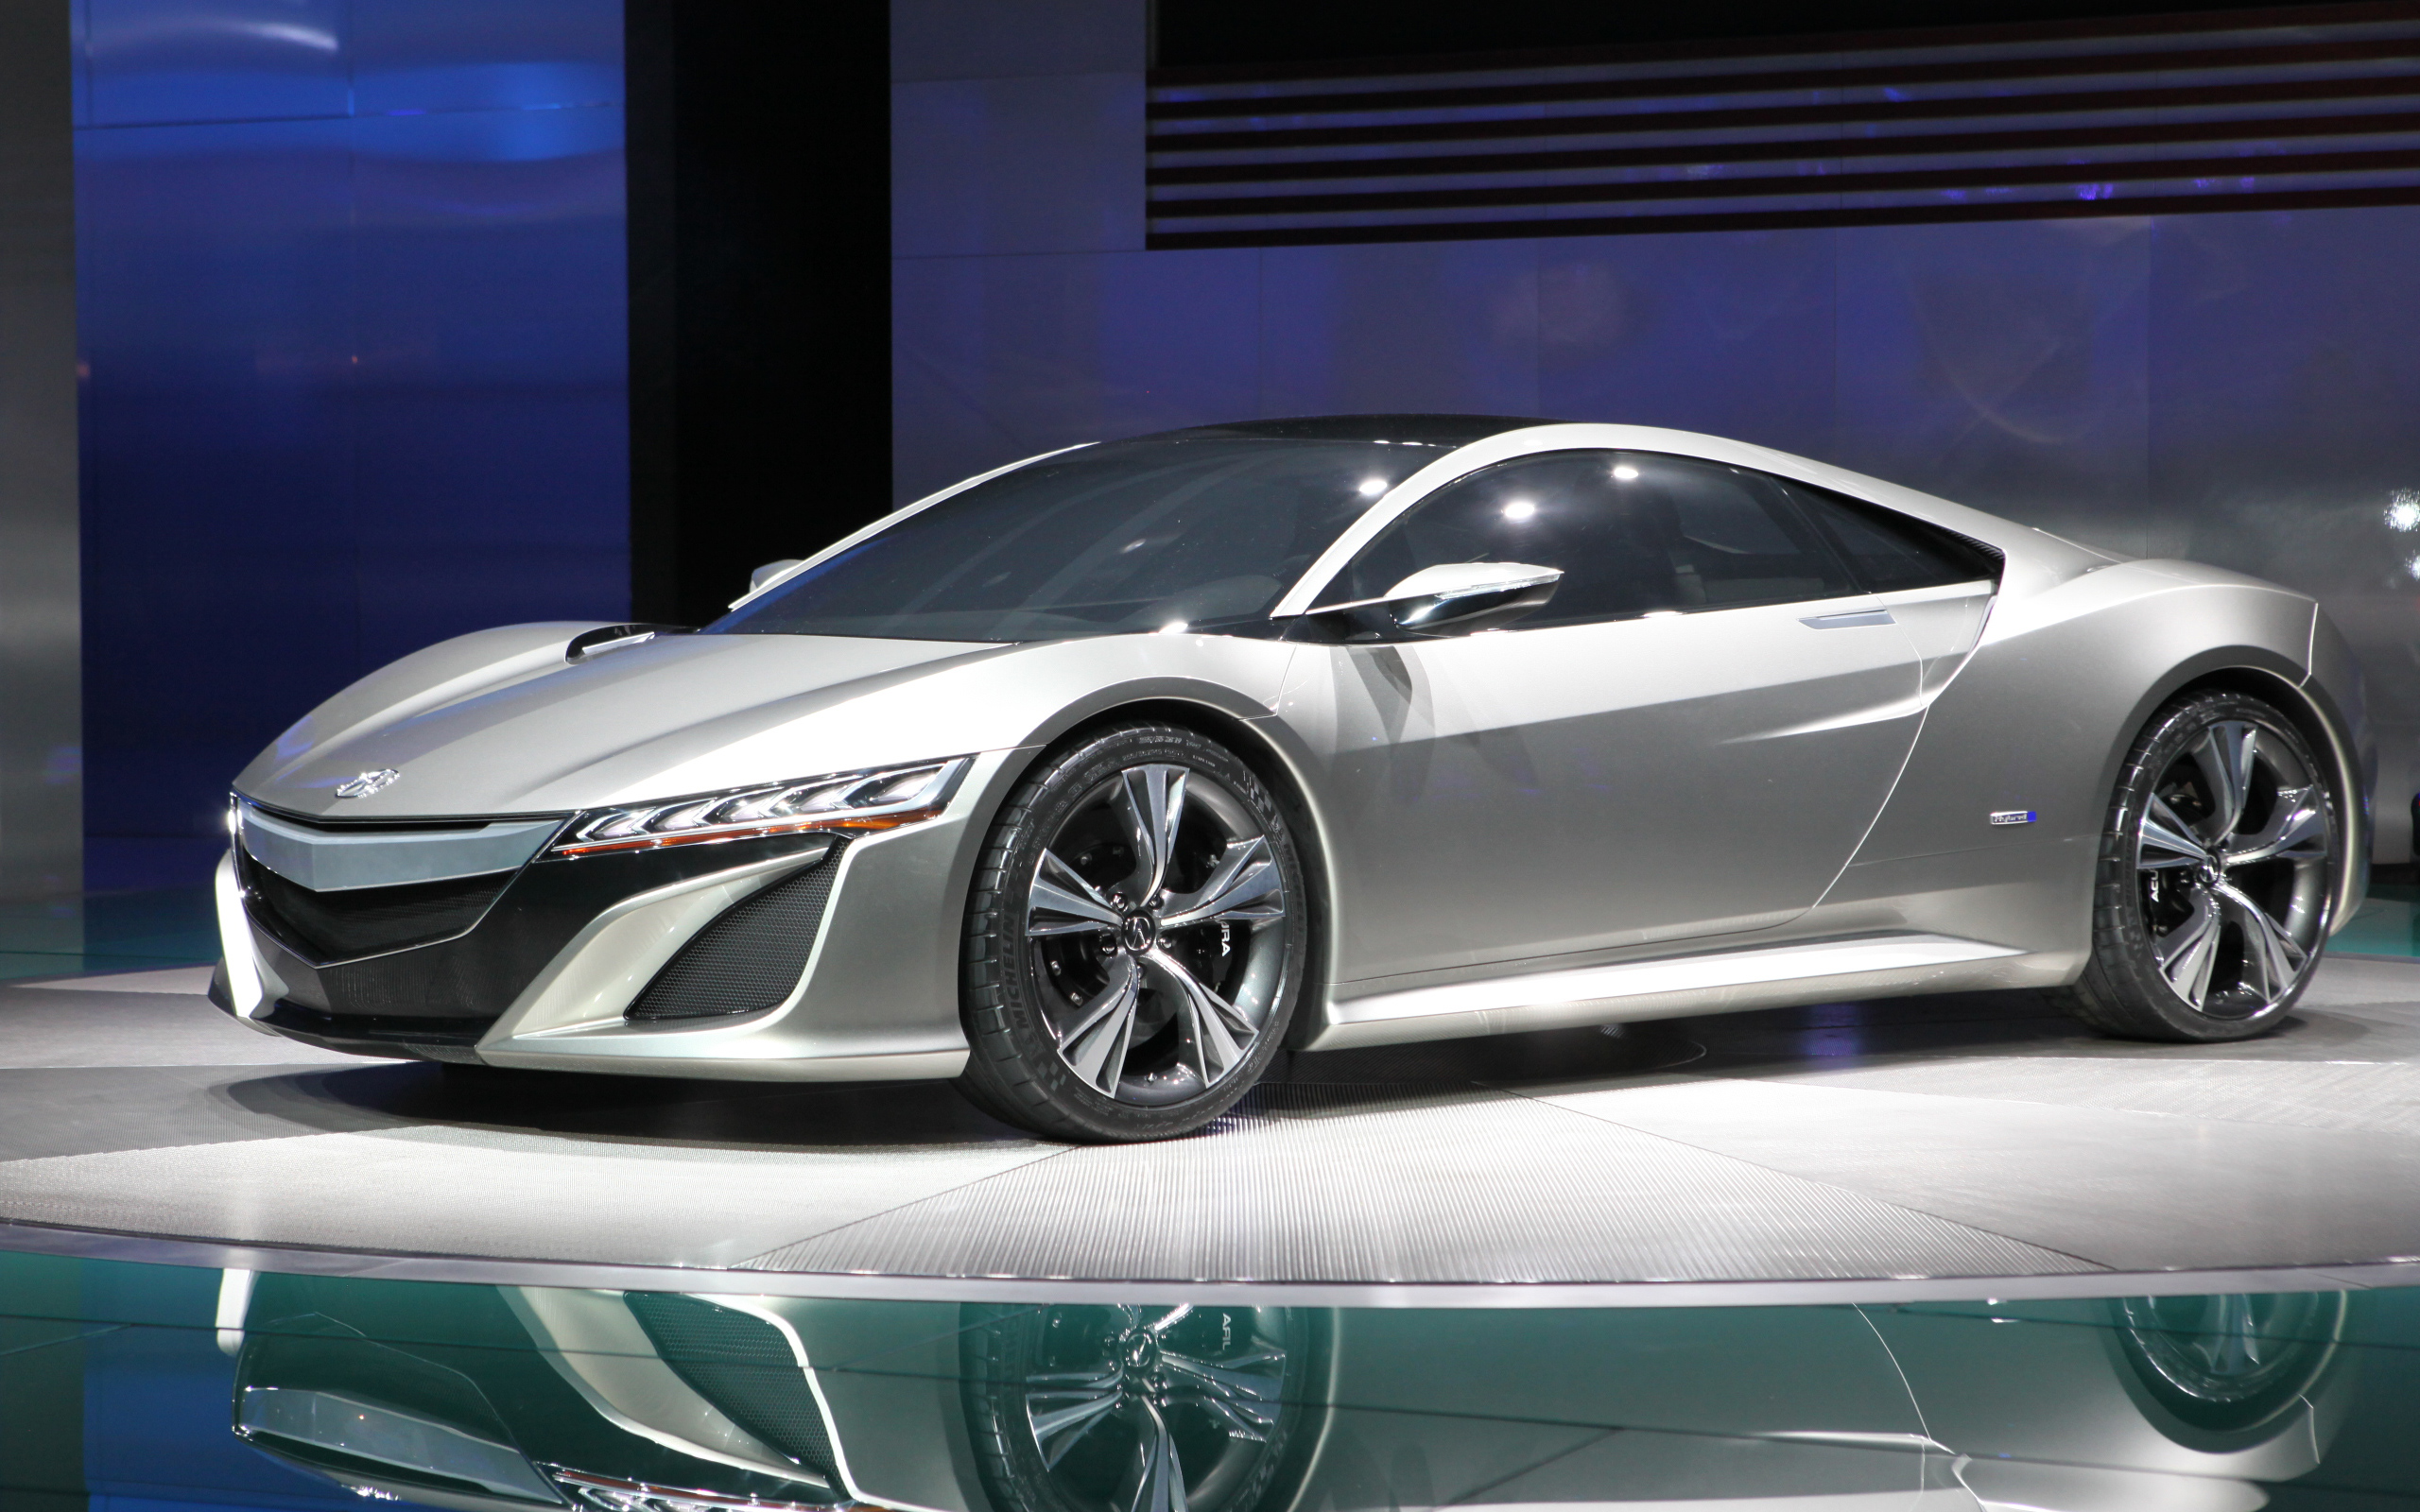 New Acura NSX Concept MGM Pictures Gallery